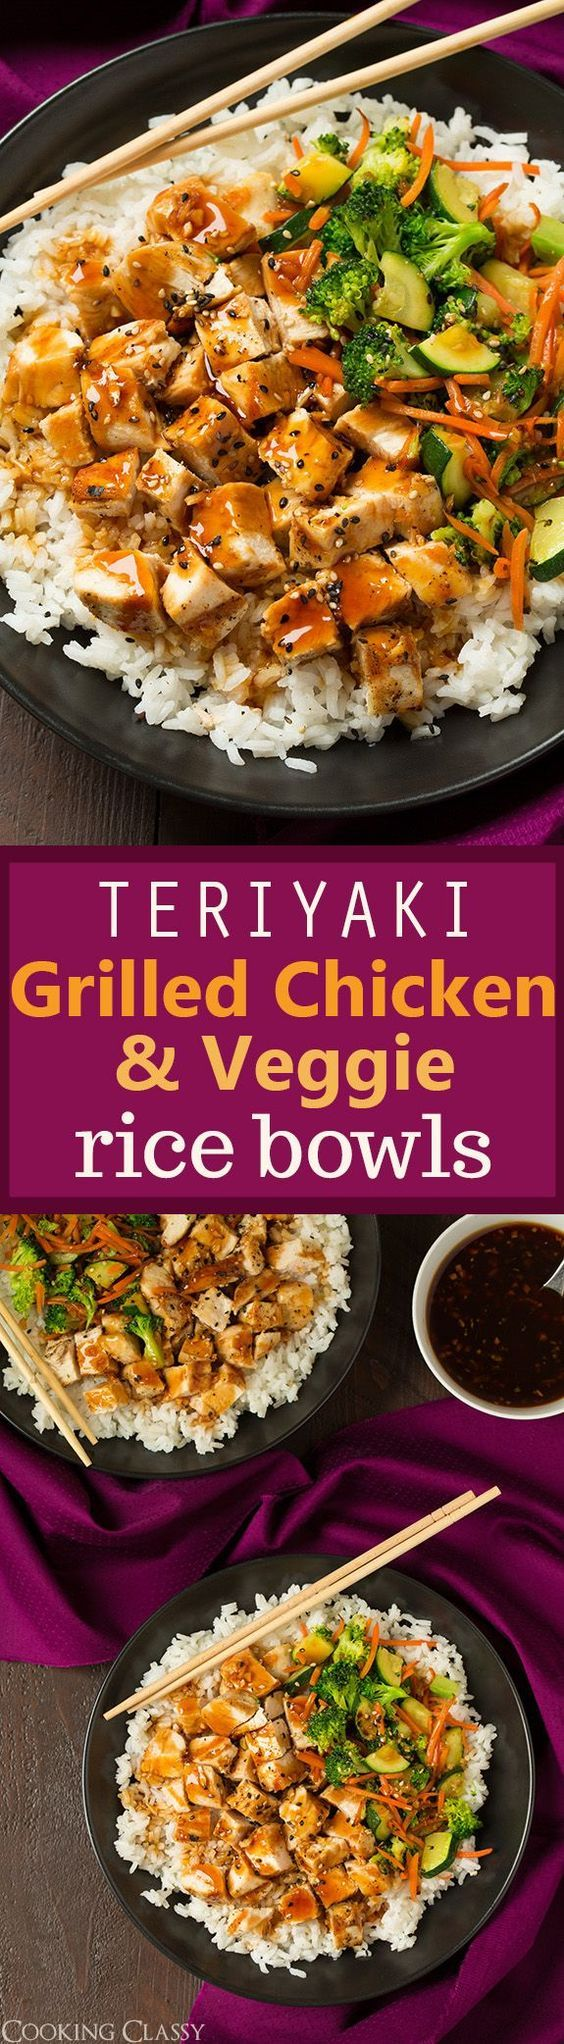 Teriyaki Grilled Chicken and Veggie Rice Bowls  hearty healthy and totally delicious! The easy teriyaki sauce recipe is perfect!